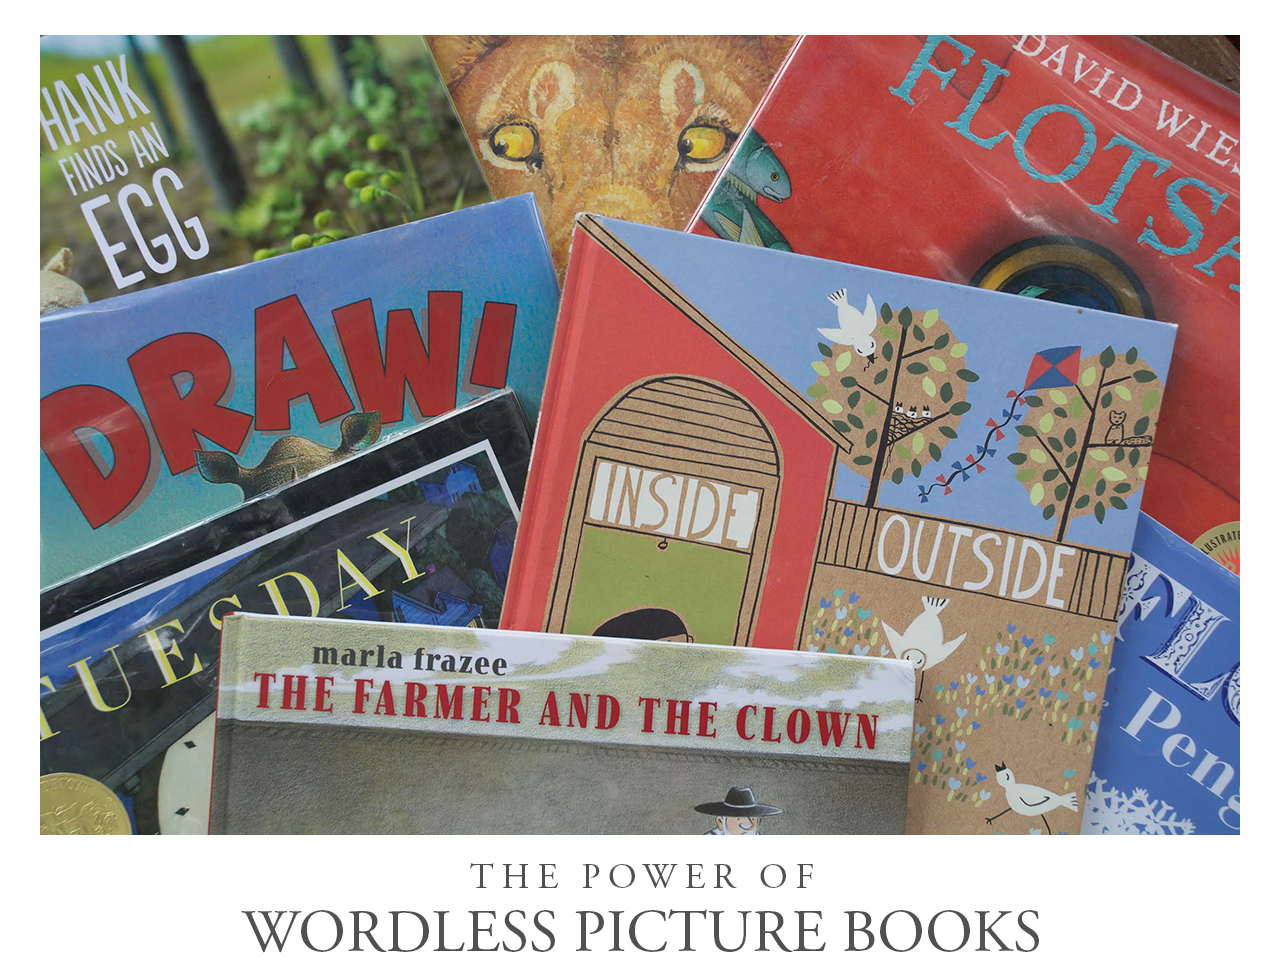 The Power of Wordless Picture Books